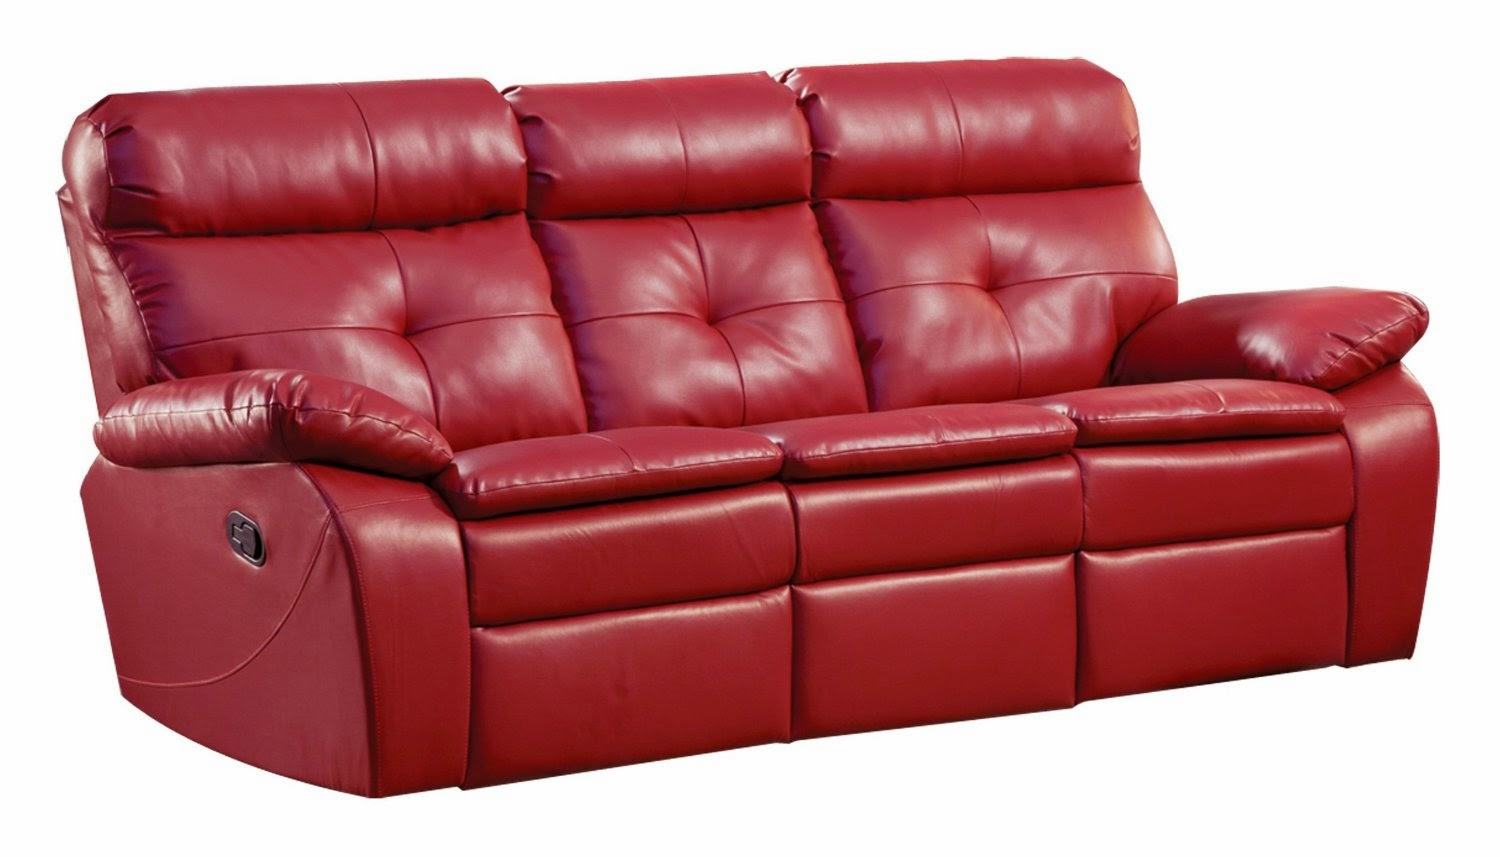 red leather sofa sets on sale buy tufted reclining sofas for cheap